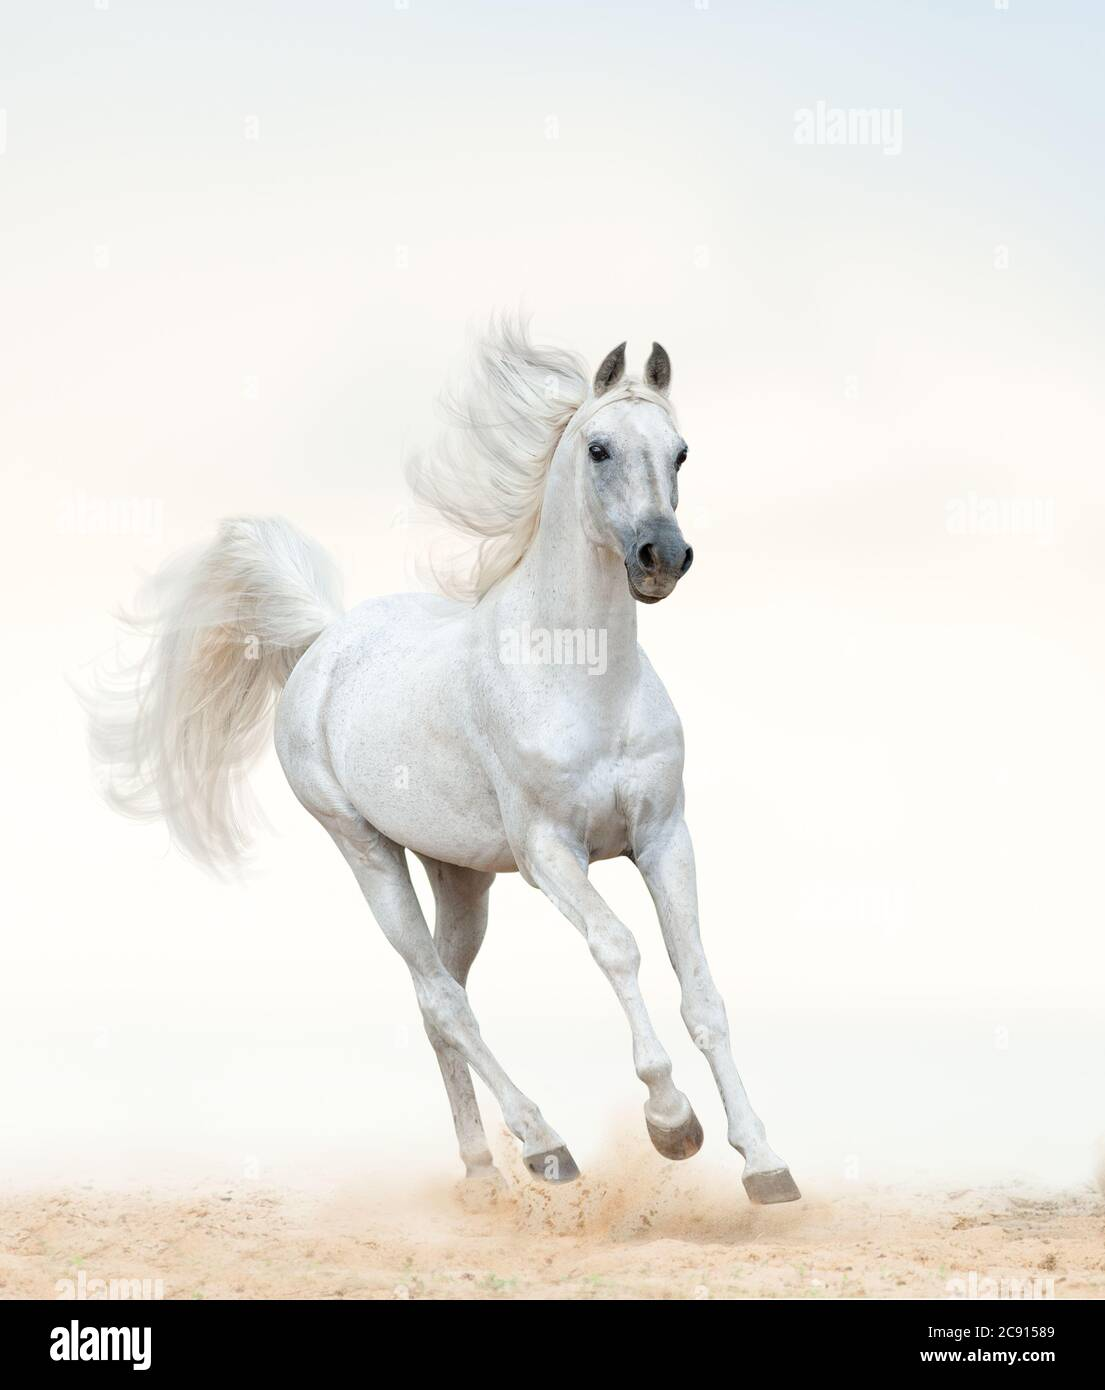 Arab Horse Riding High Resolution Stock Photography And Images Alamy